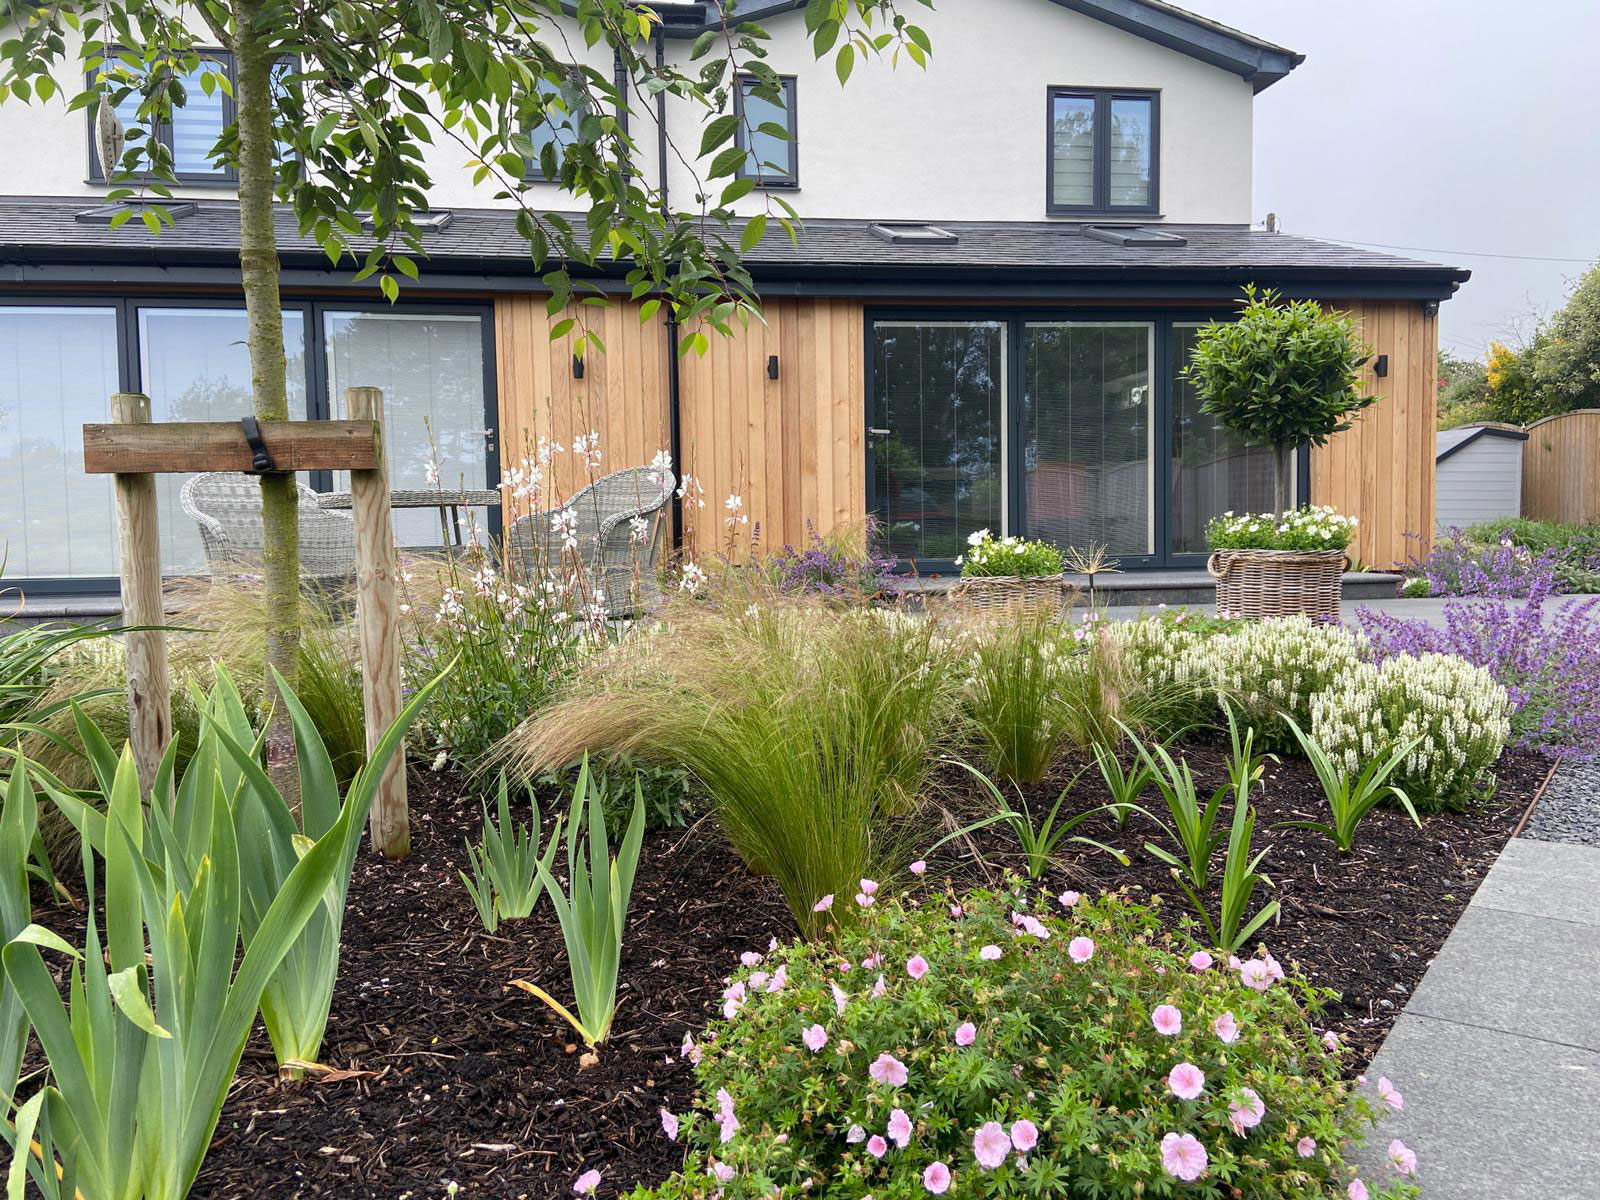 planting for newly landscaped garden with geraniums, iris and grasses